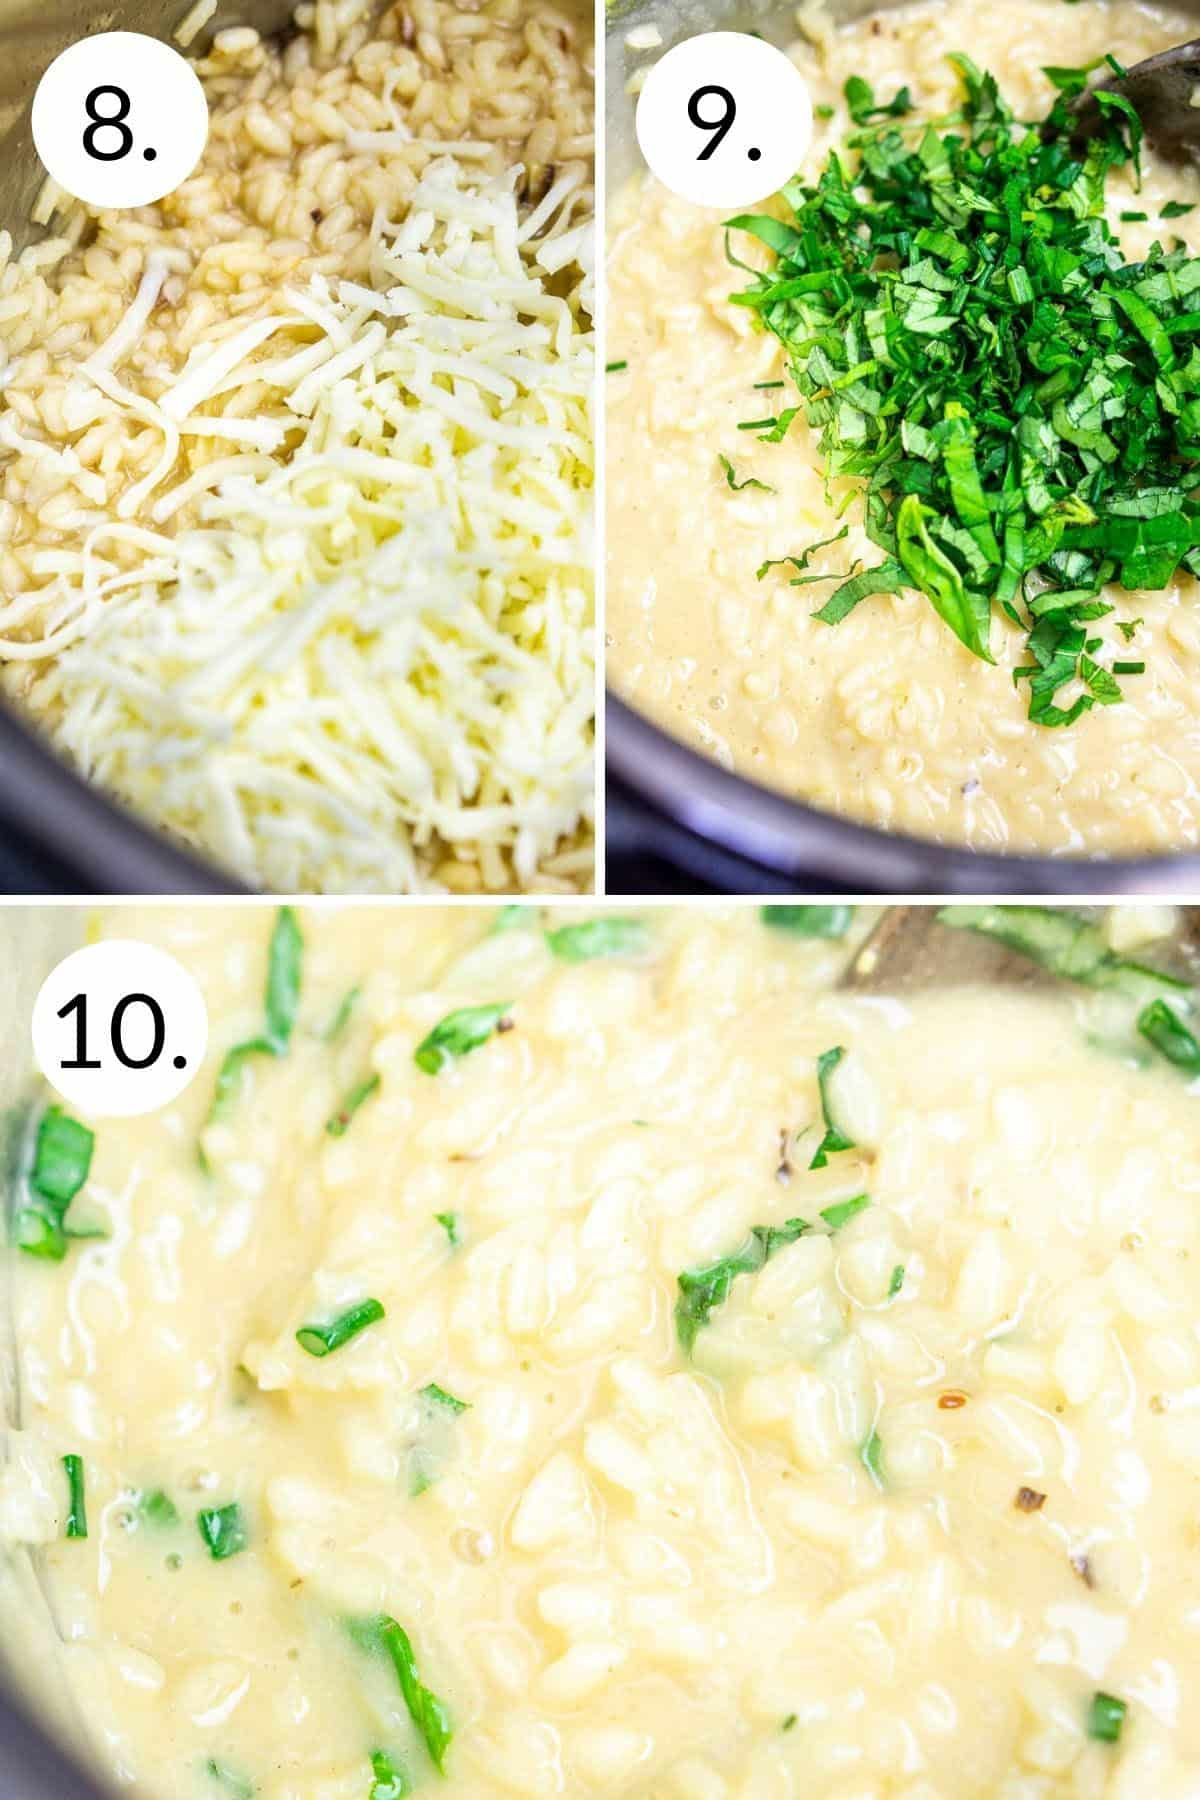 A collage showing the process of adding the cheese, herbs and stirring to get the right texture.